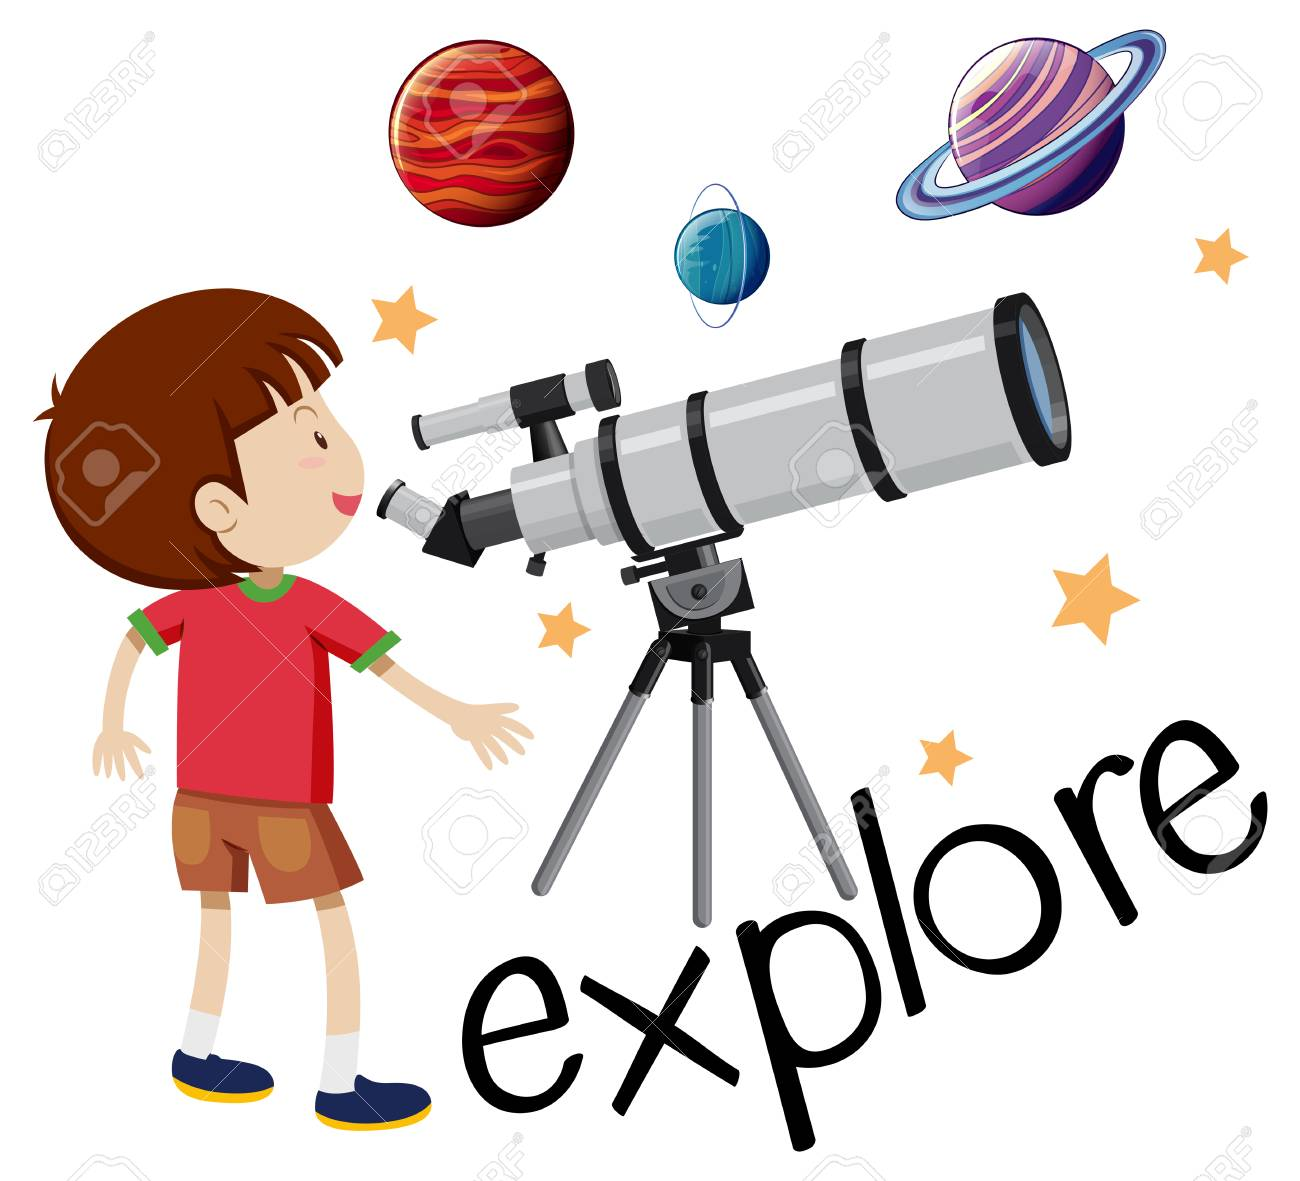 Flashcard for explore with kid looking through telescope illustration.